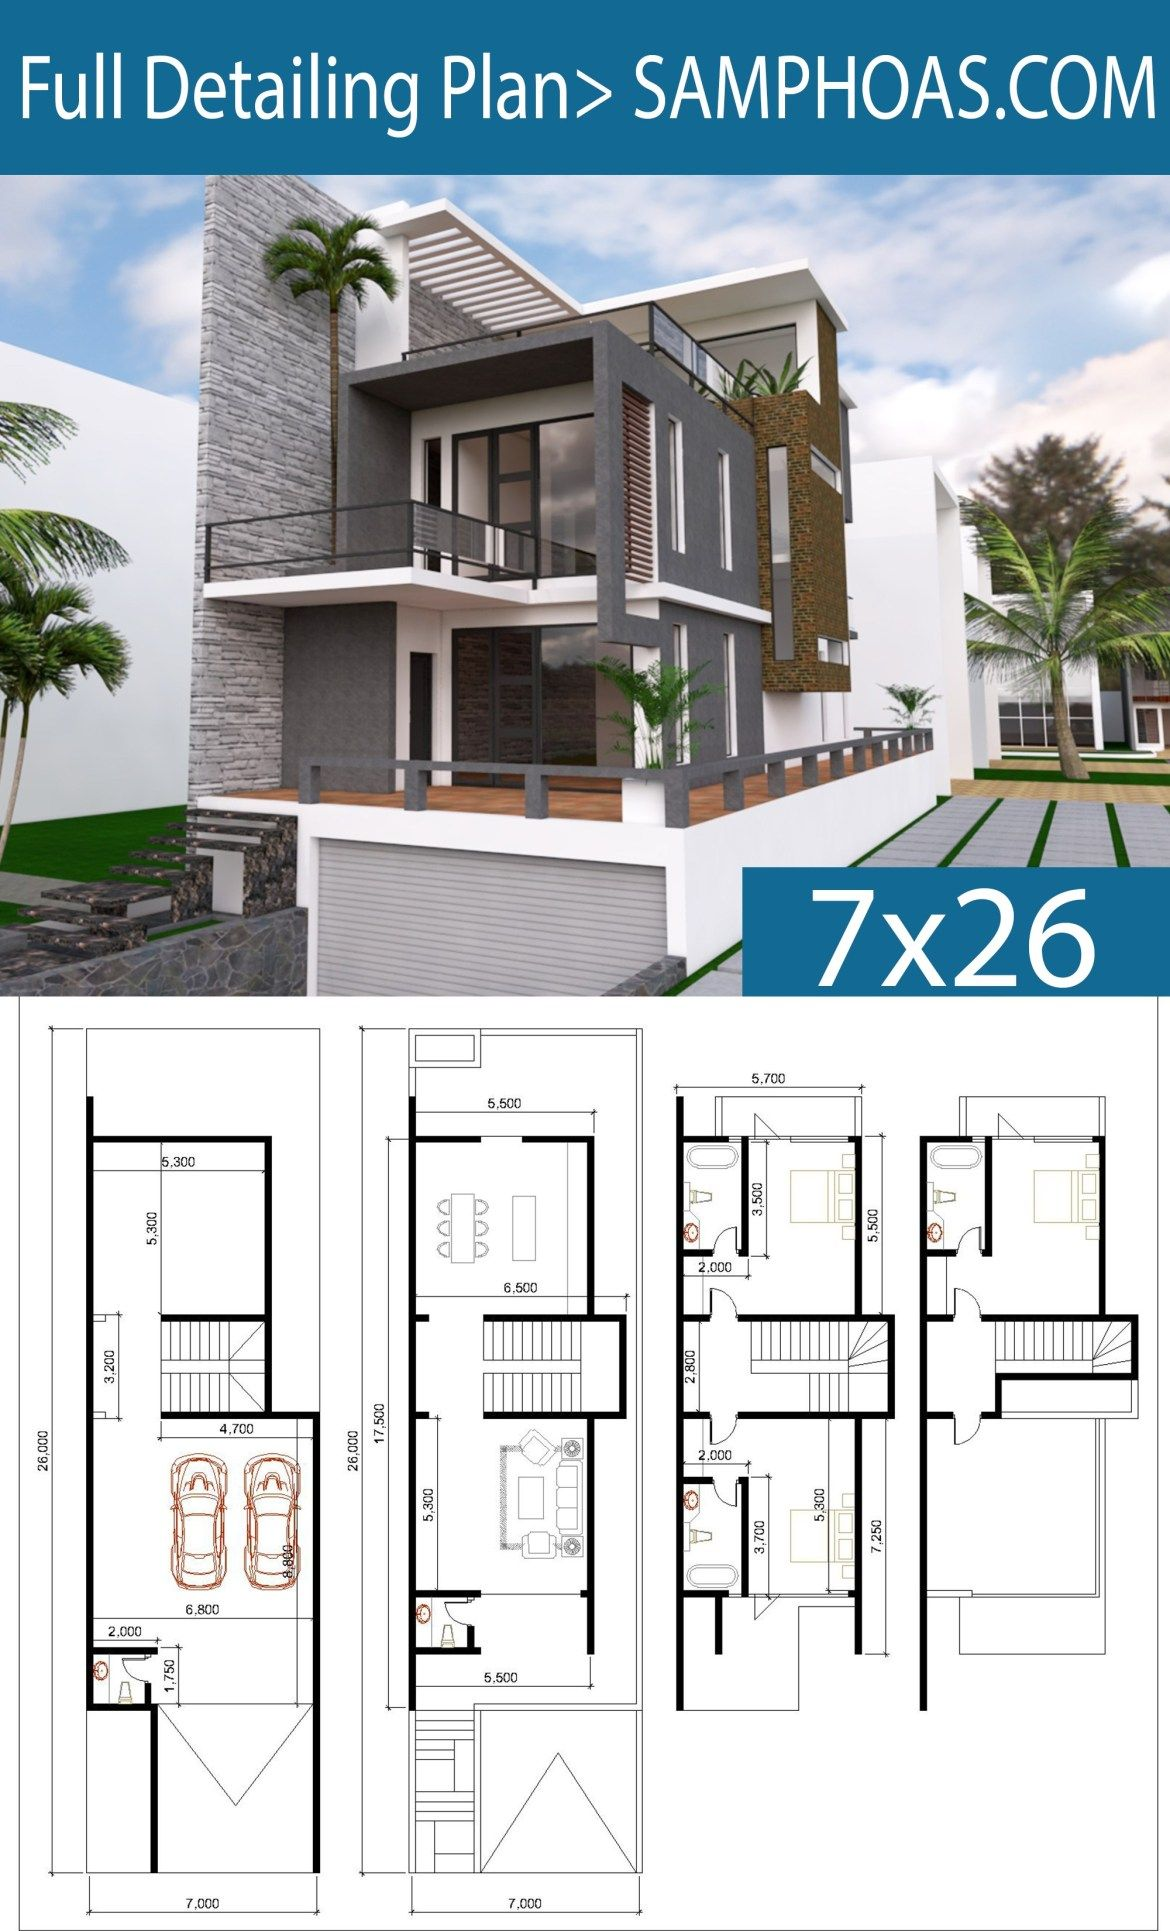 Modern House Plans With Land Size 7mx26m Samphoas Plansearch Modern House Plans Model House Plan House Design